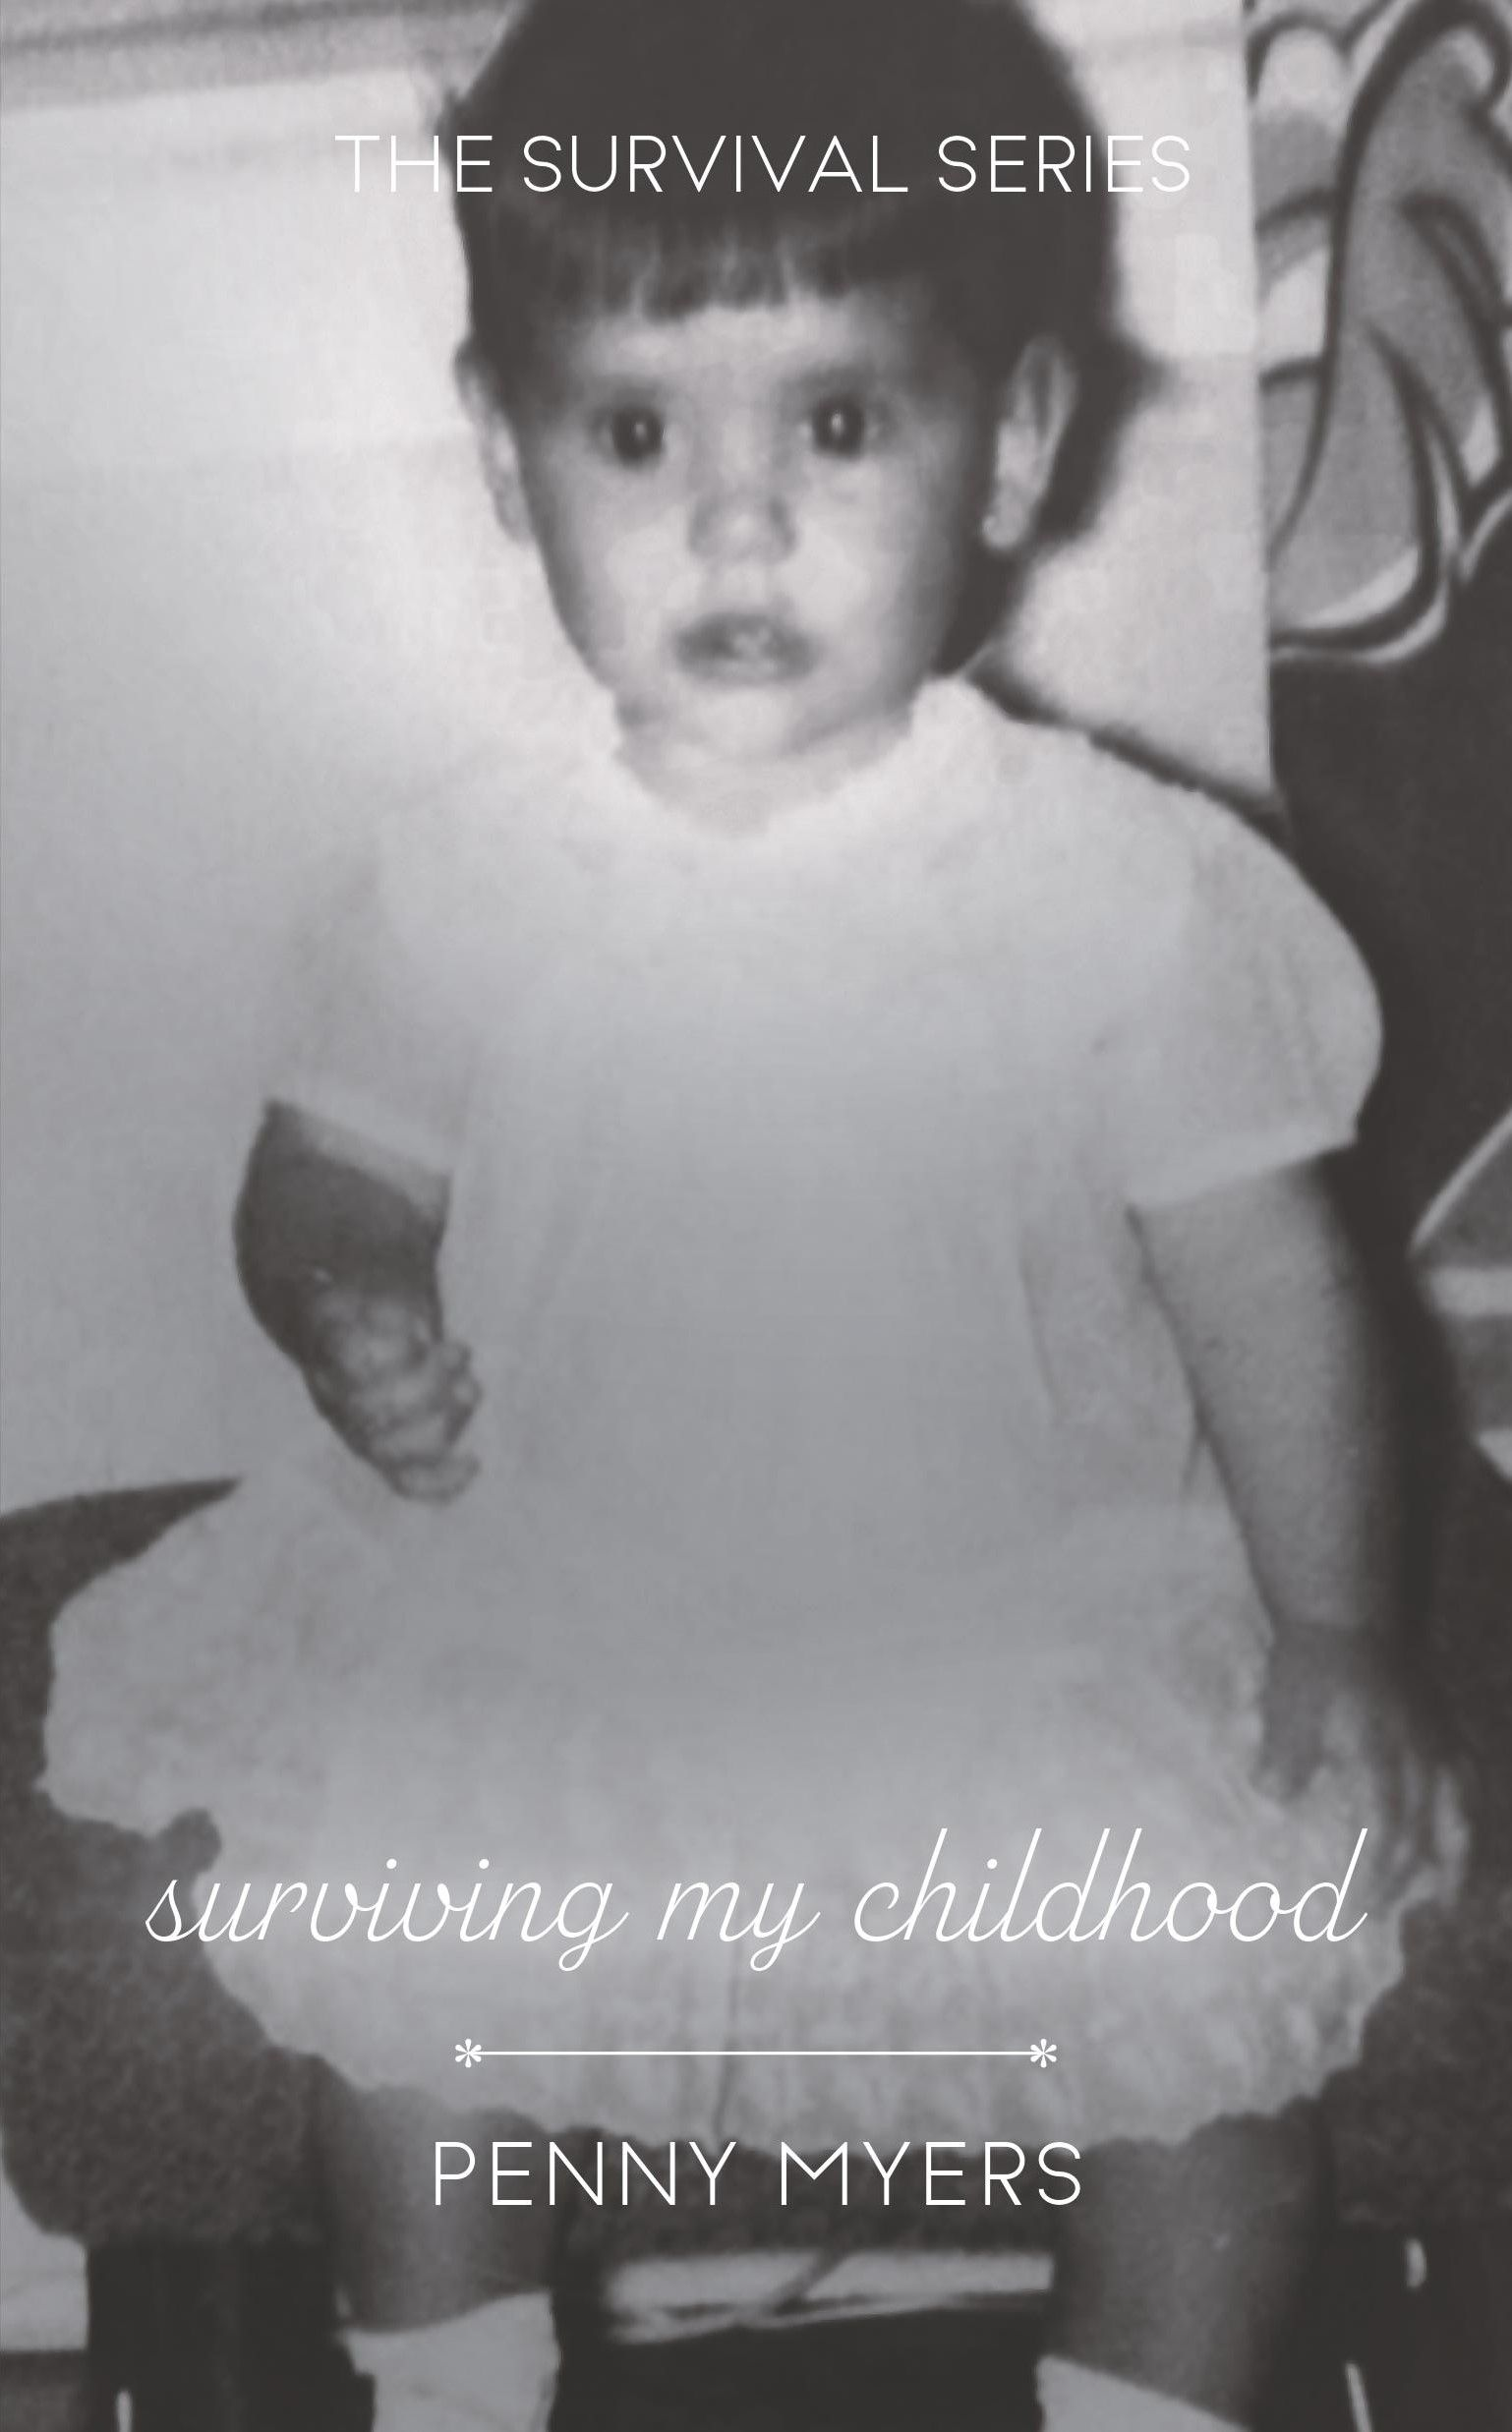 Surviving My Childhood's Ebook Image